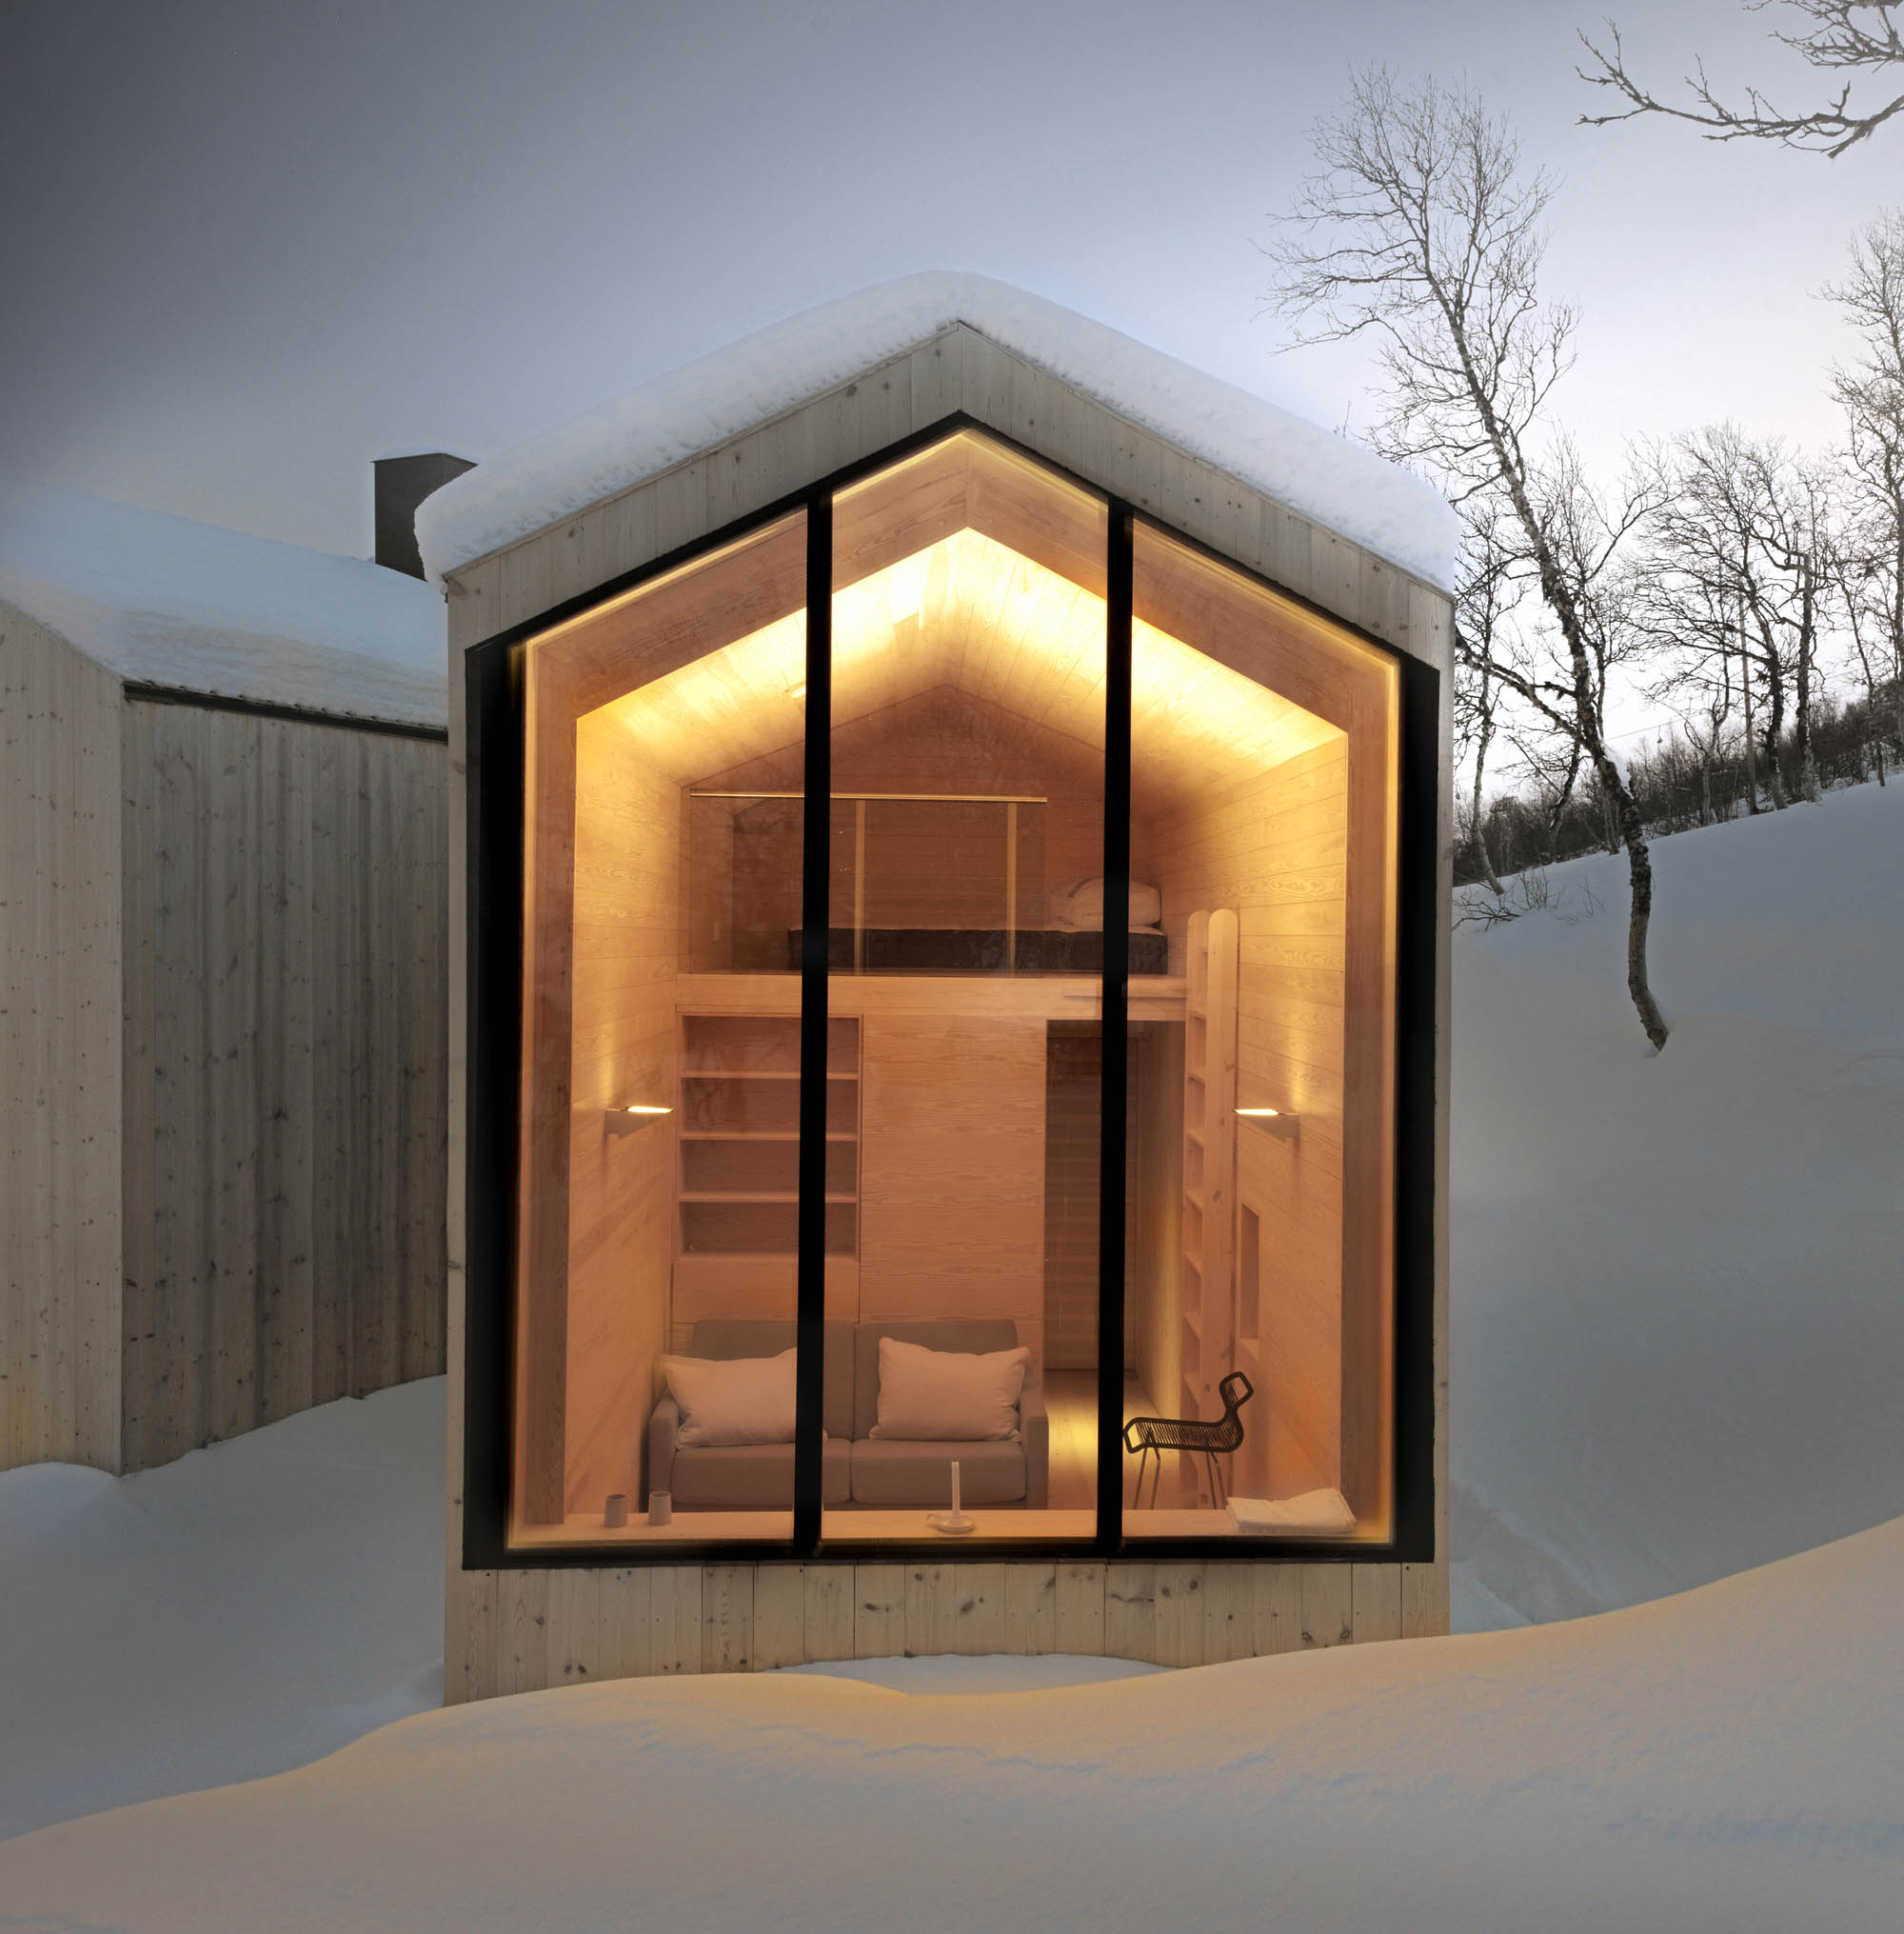 split-mountain-lodge-norway-rooms